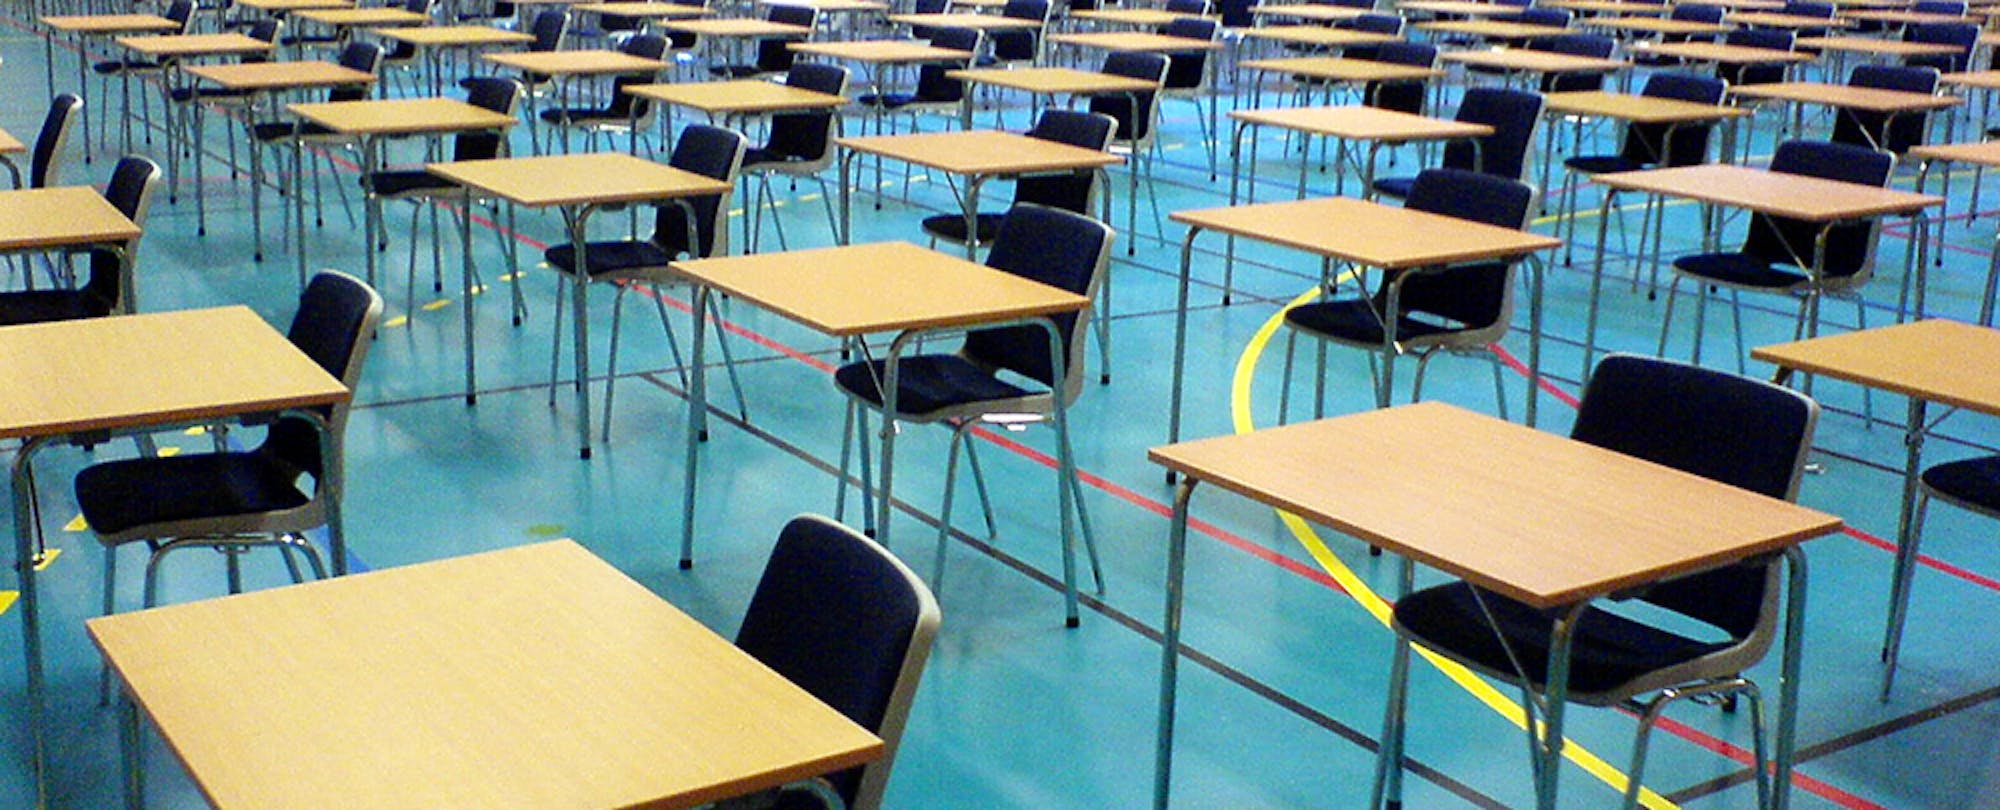 PARCC Shares 'Lessons Learned' from Common Core Field Tests